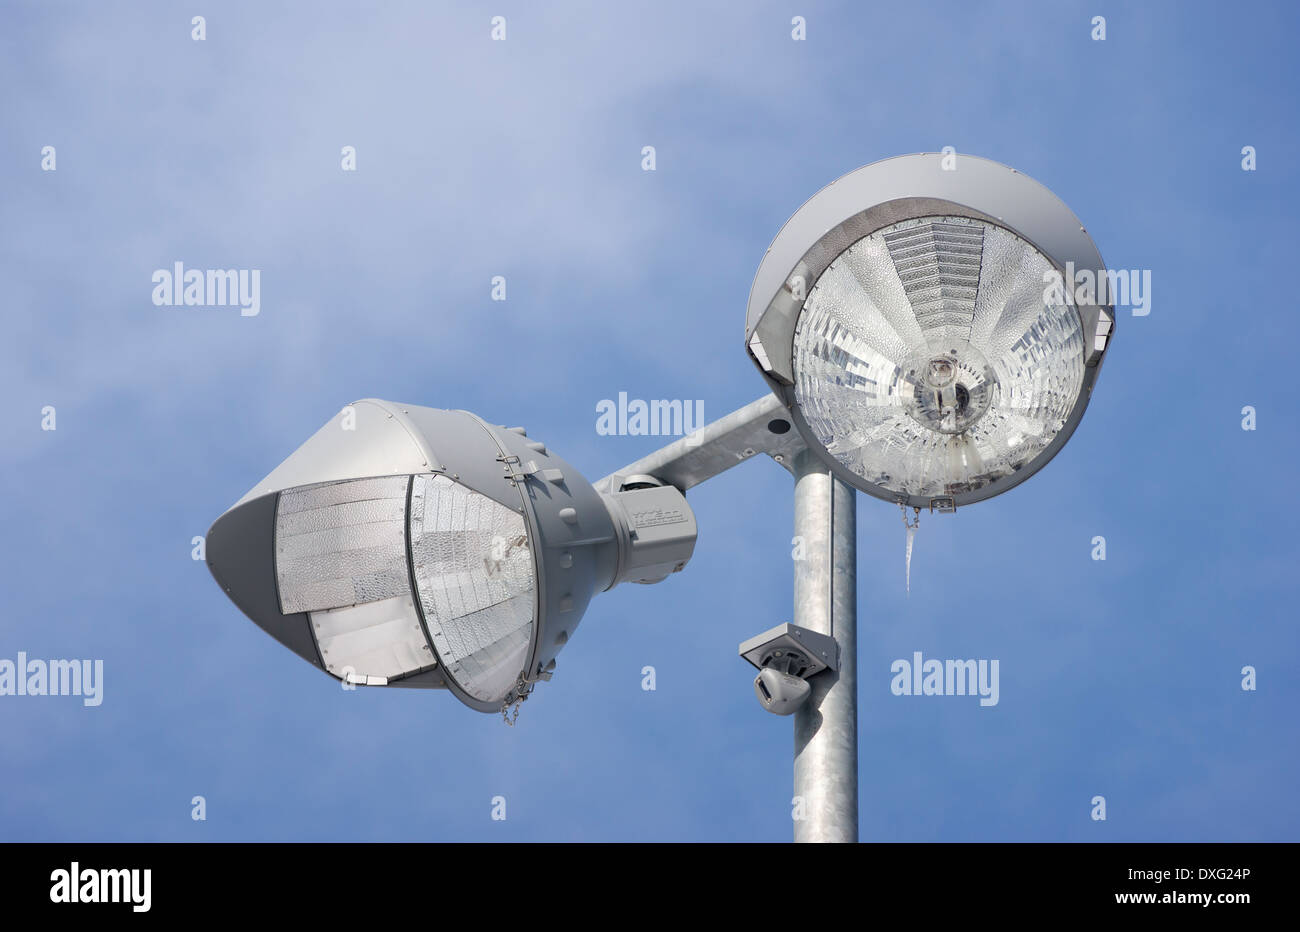 Pole-mounted outdoor light fixtures - Stock Image